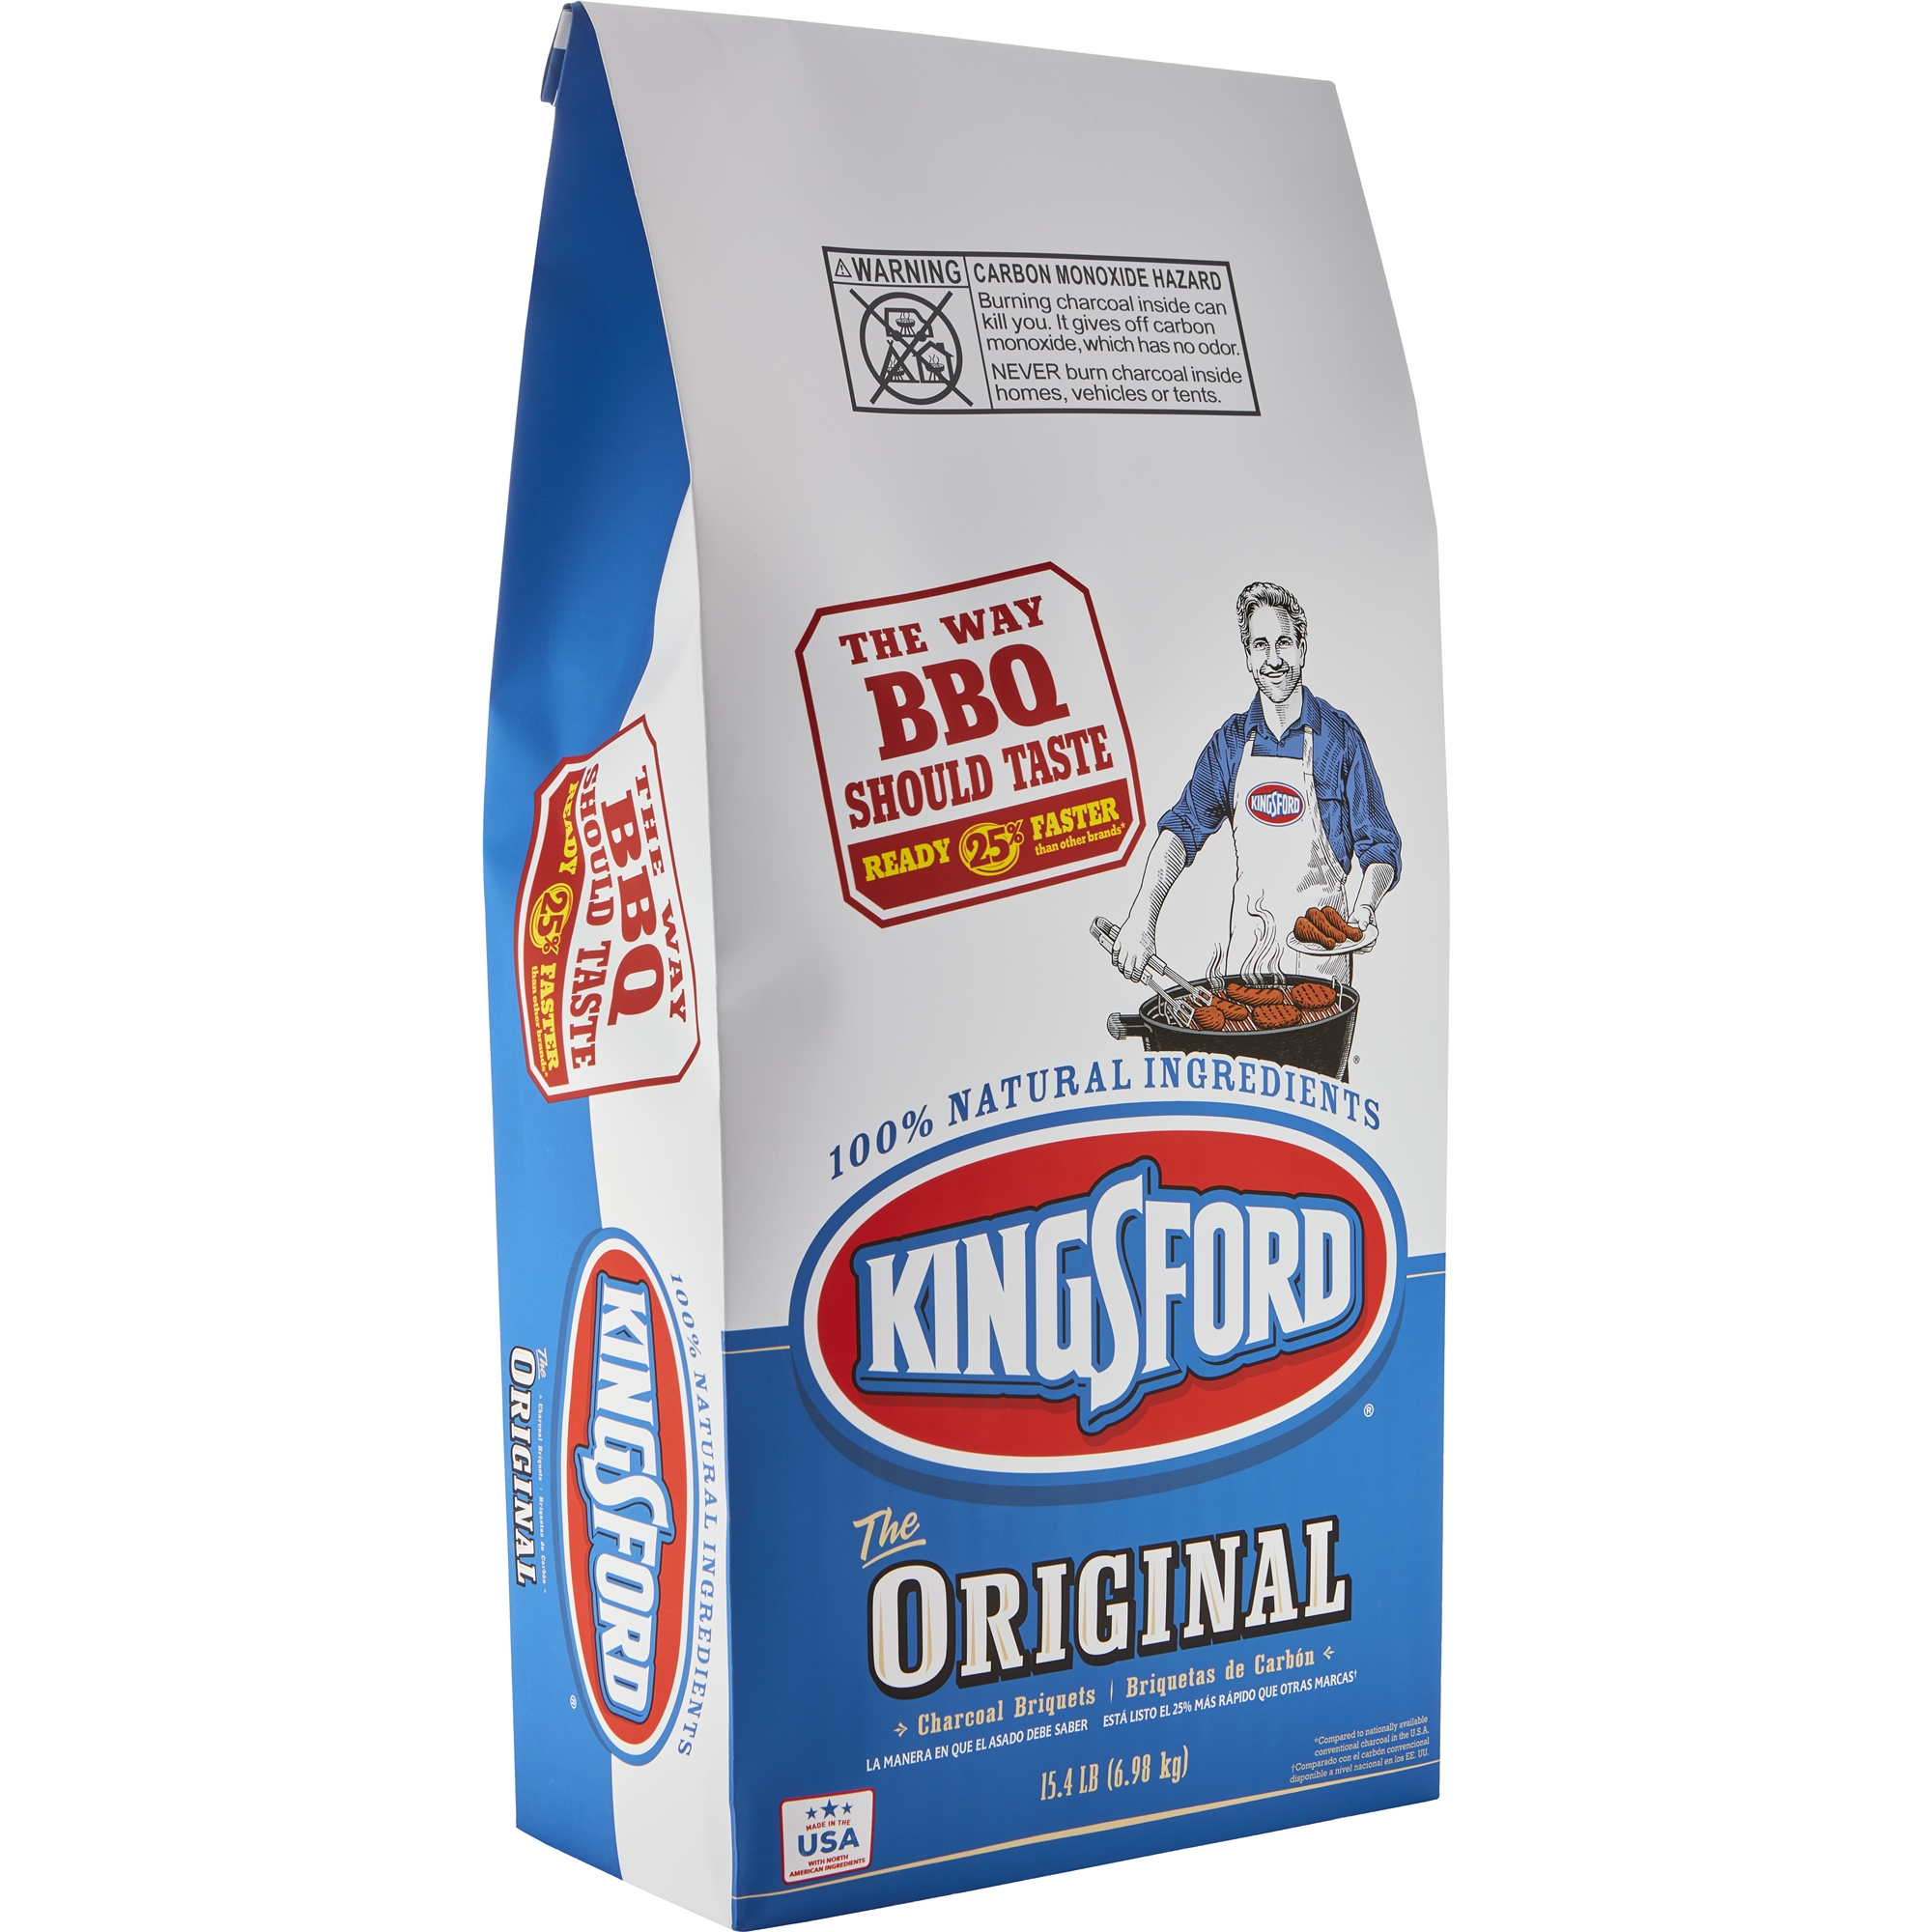 Kingsford Original Charcoal Briquettes, 15.4 lb Bag